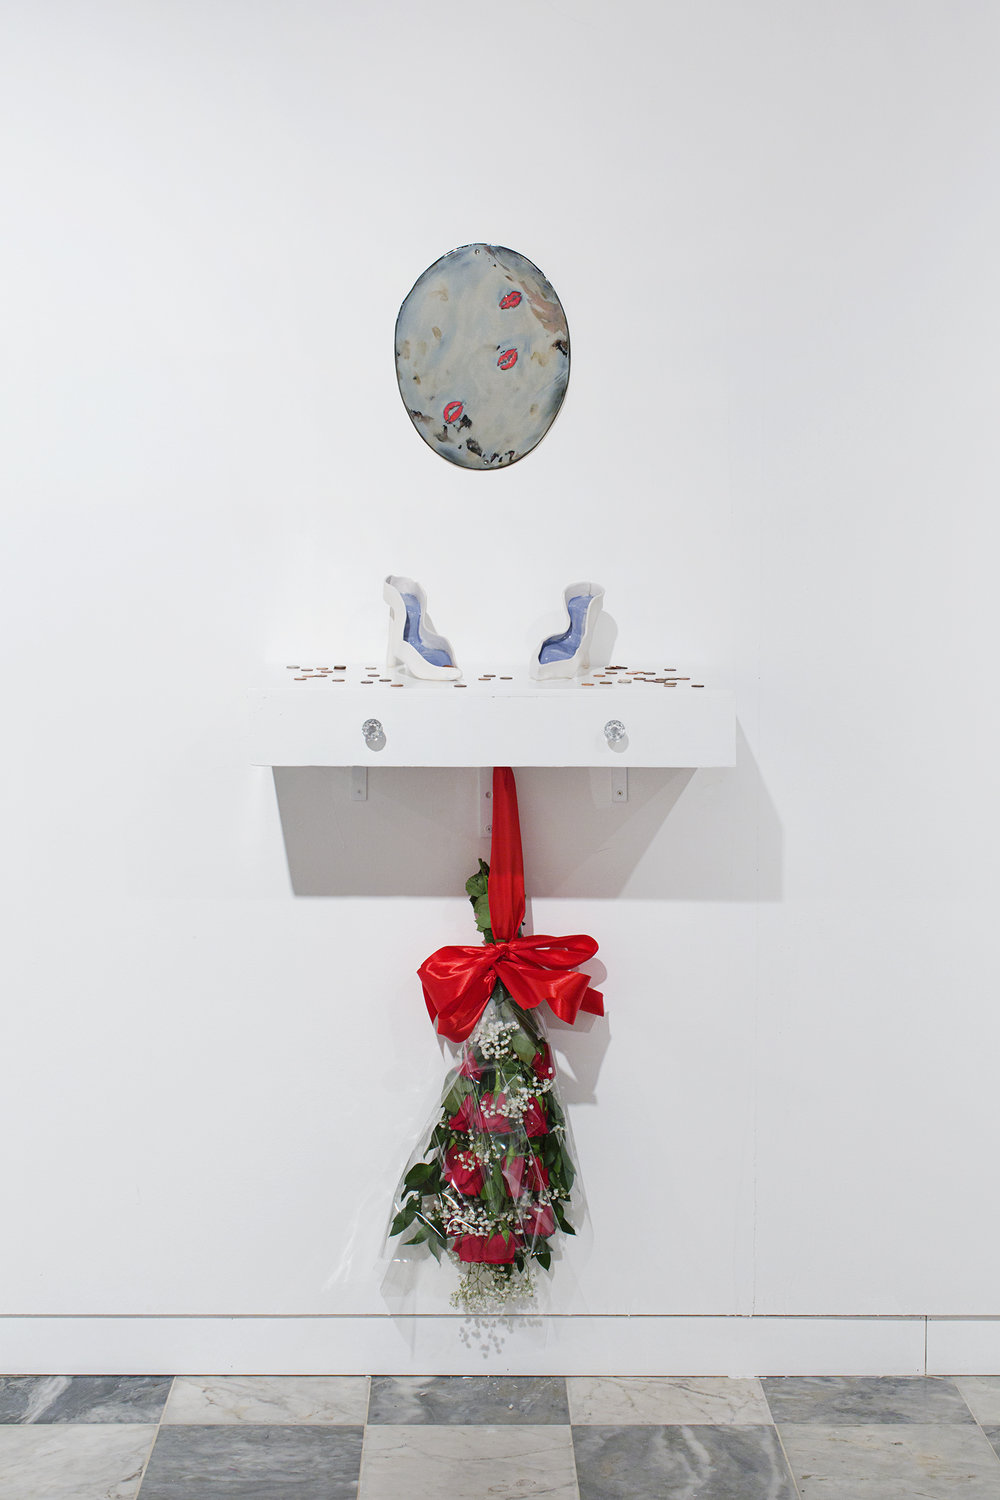 "Zuleyka Rivera, Miss Universe 2006, 2018   Porcelain mirror, porcelain wishing well shoes on vanity, pennies, nickels, dimes, red roses, silk, cellophane, baby's breath, hardware Porcelain mirror 14 x 8"" (35.6 x 20.3 cm), vanity shelf 12 x 28 x 4.5"" (30.5 x 71.1 x 11.4   cm) Overall dimensions variable"